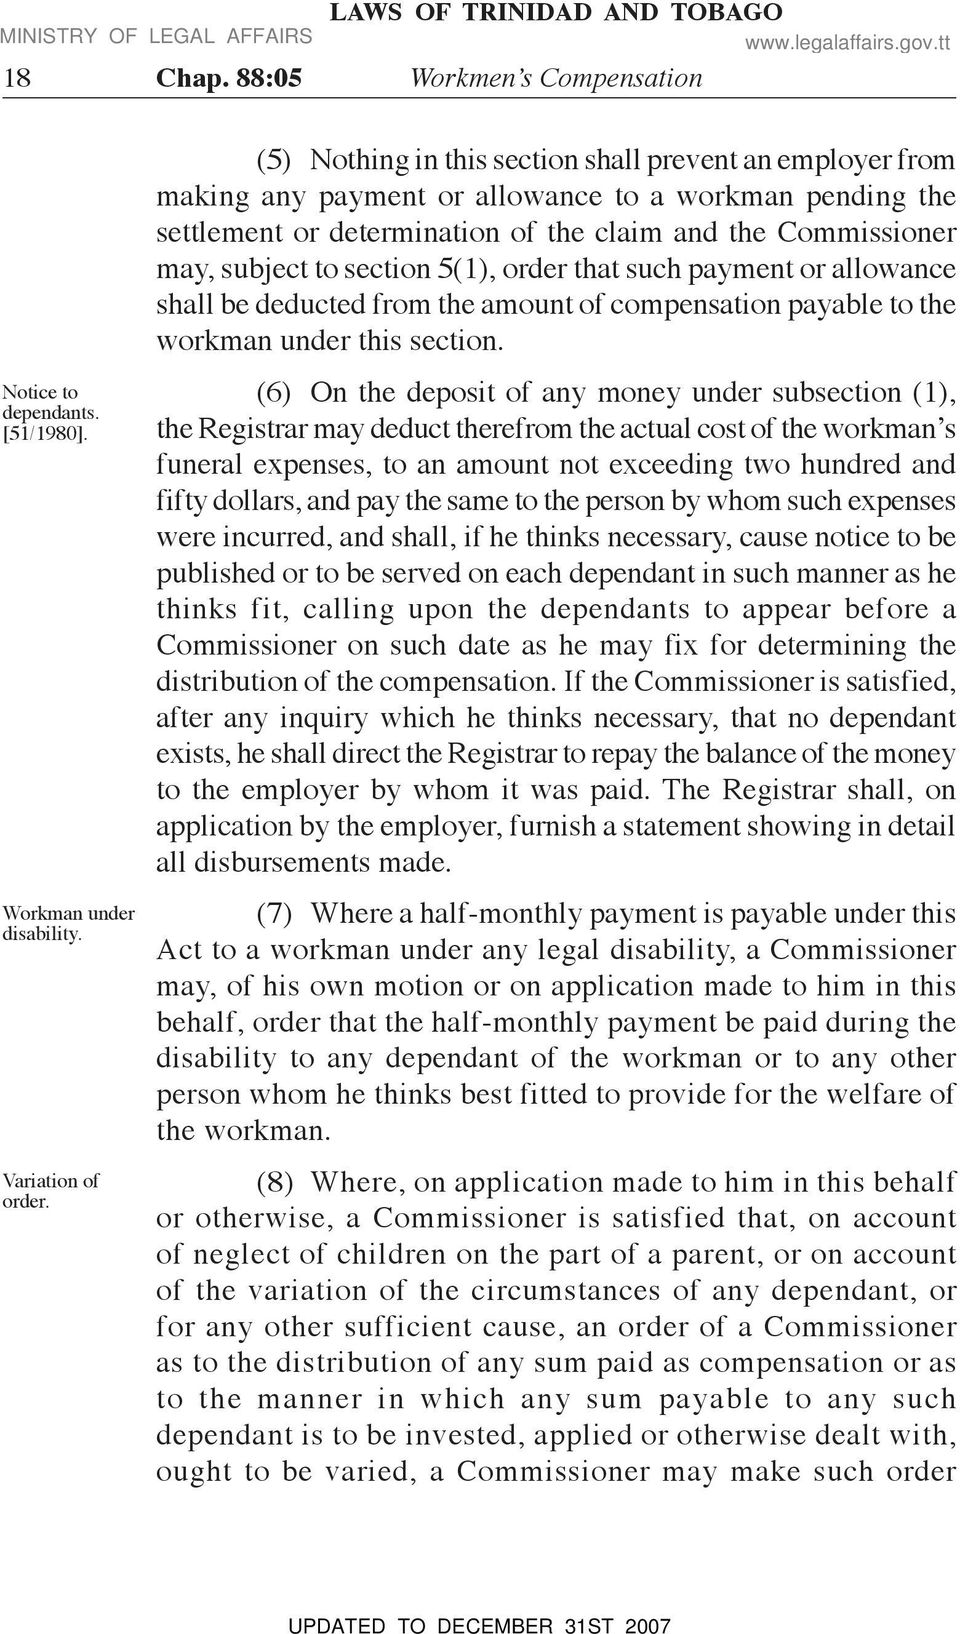 section 5(1), order that such payment or allowance shall be deducted from the amount of compensation payable to the workman under this section.